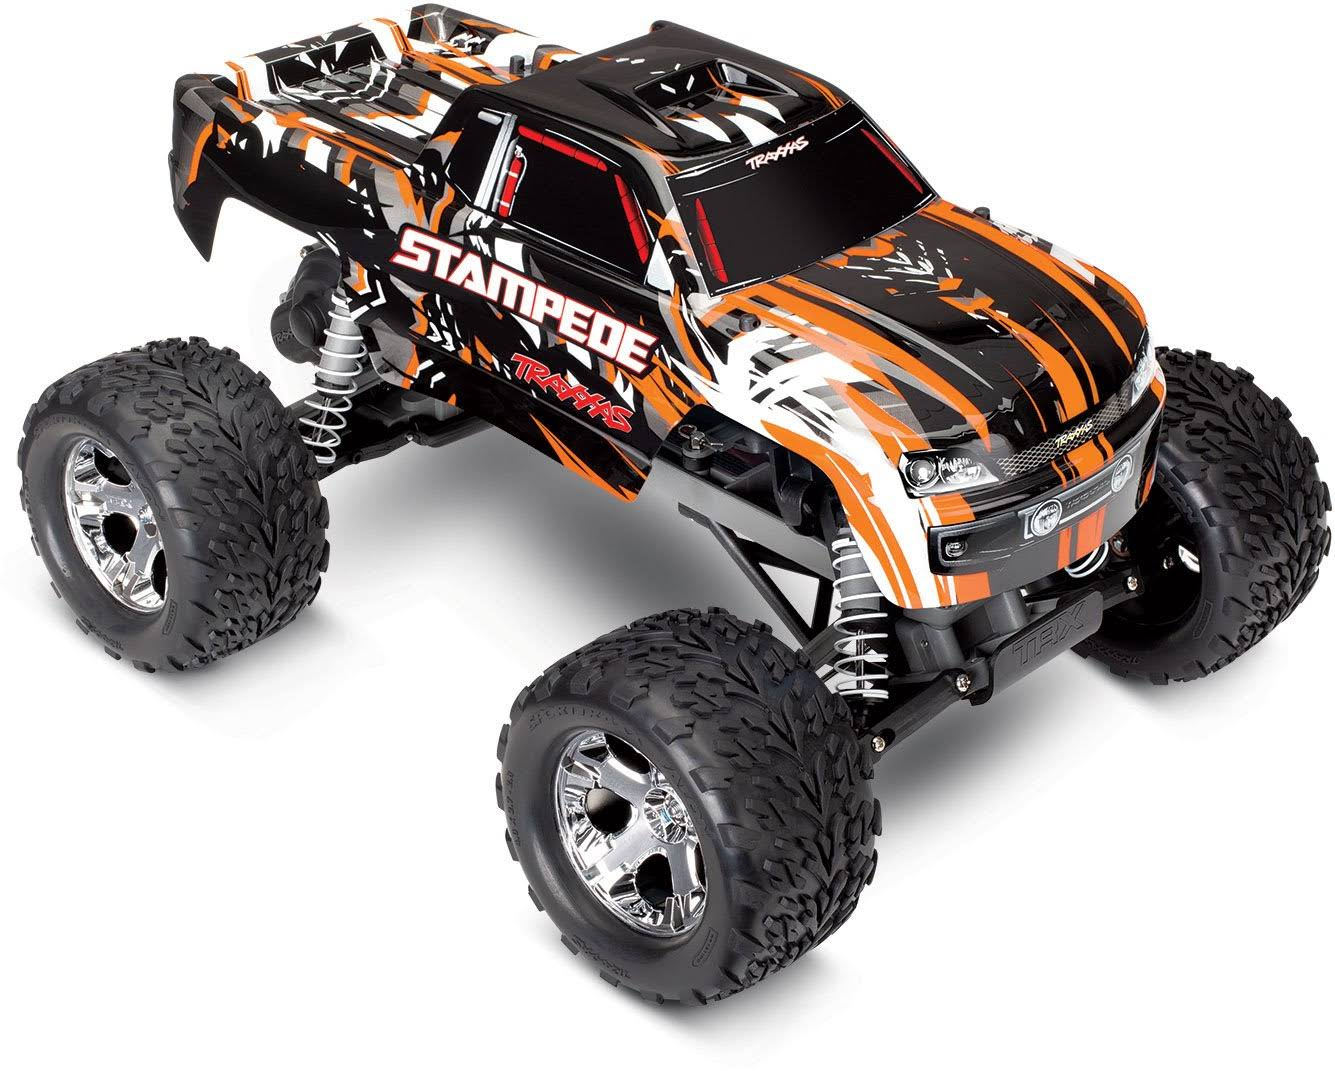 Traxxas 1/10 Stampede Monster Truck Rtr: Orange